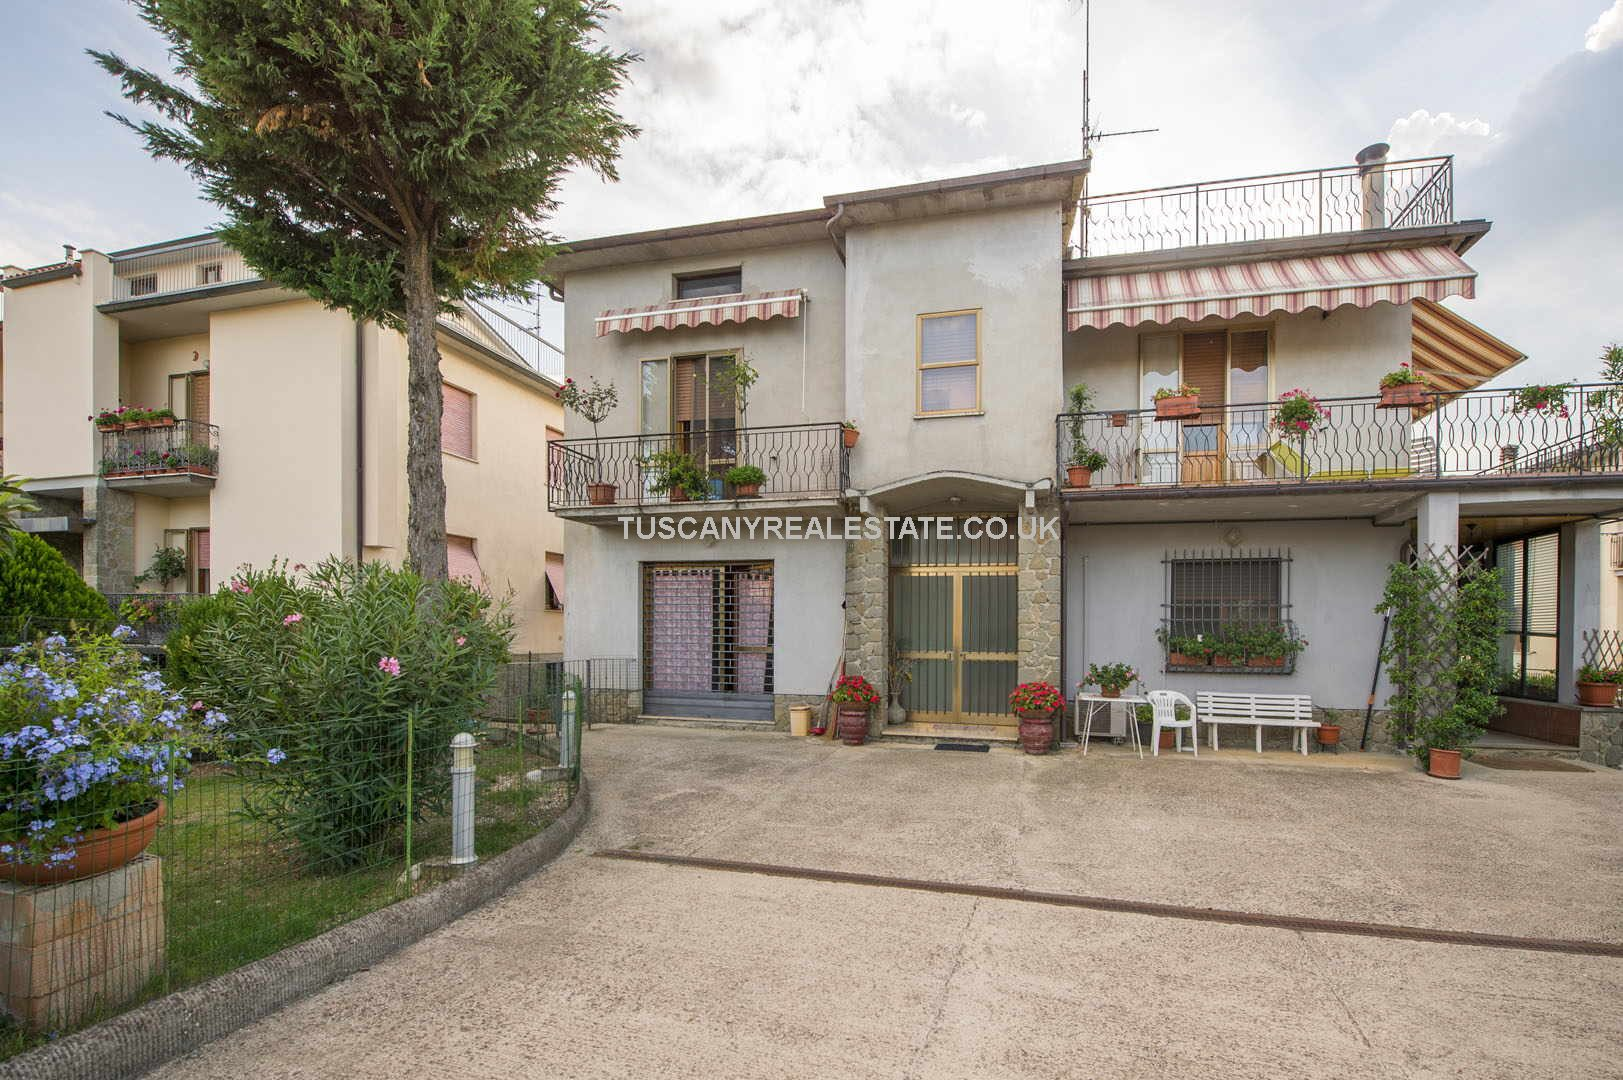 4 Bed residential apartment property - Anghiari Tuscany